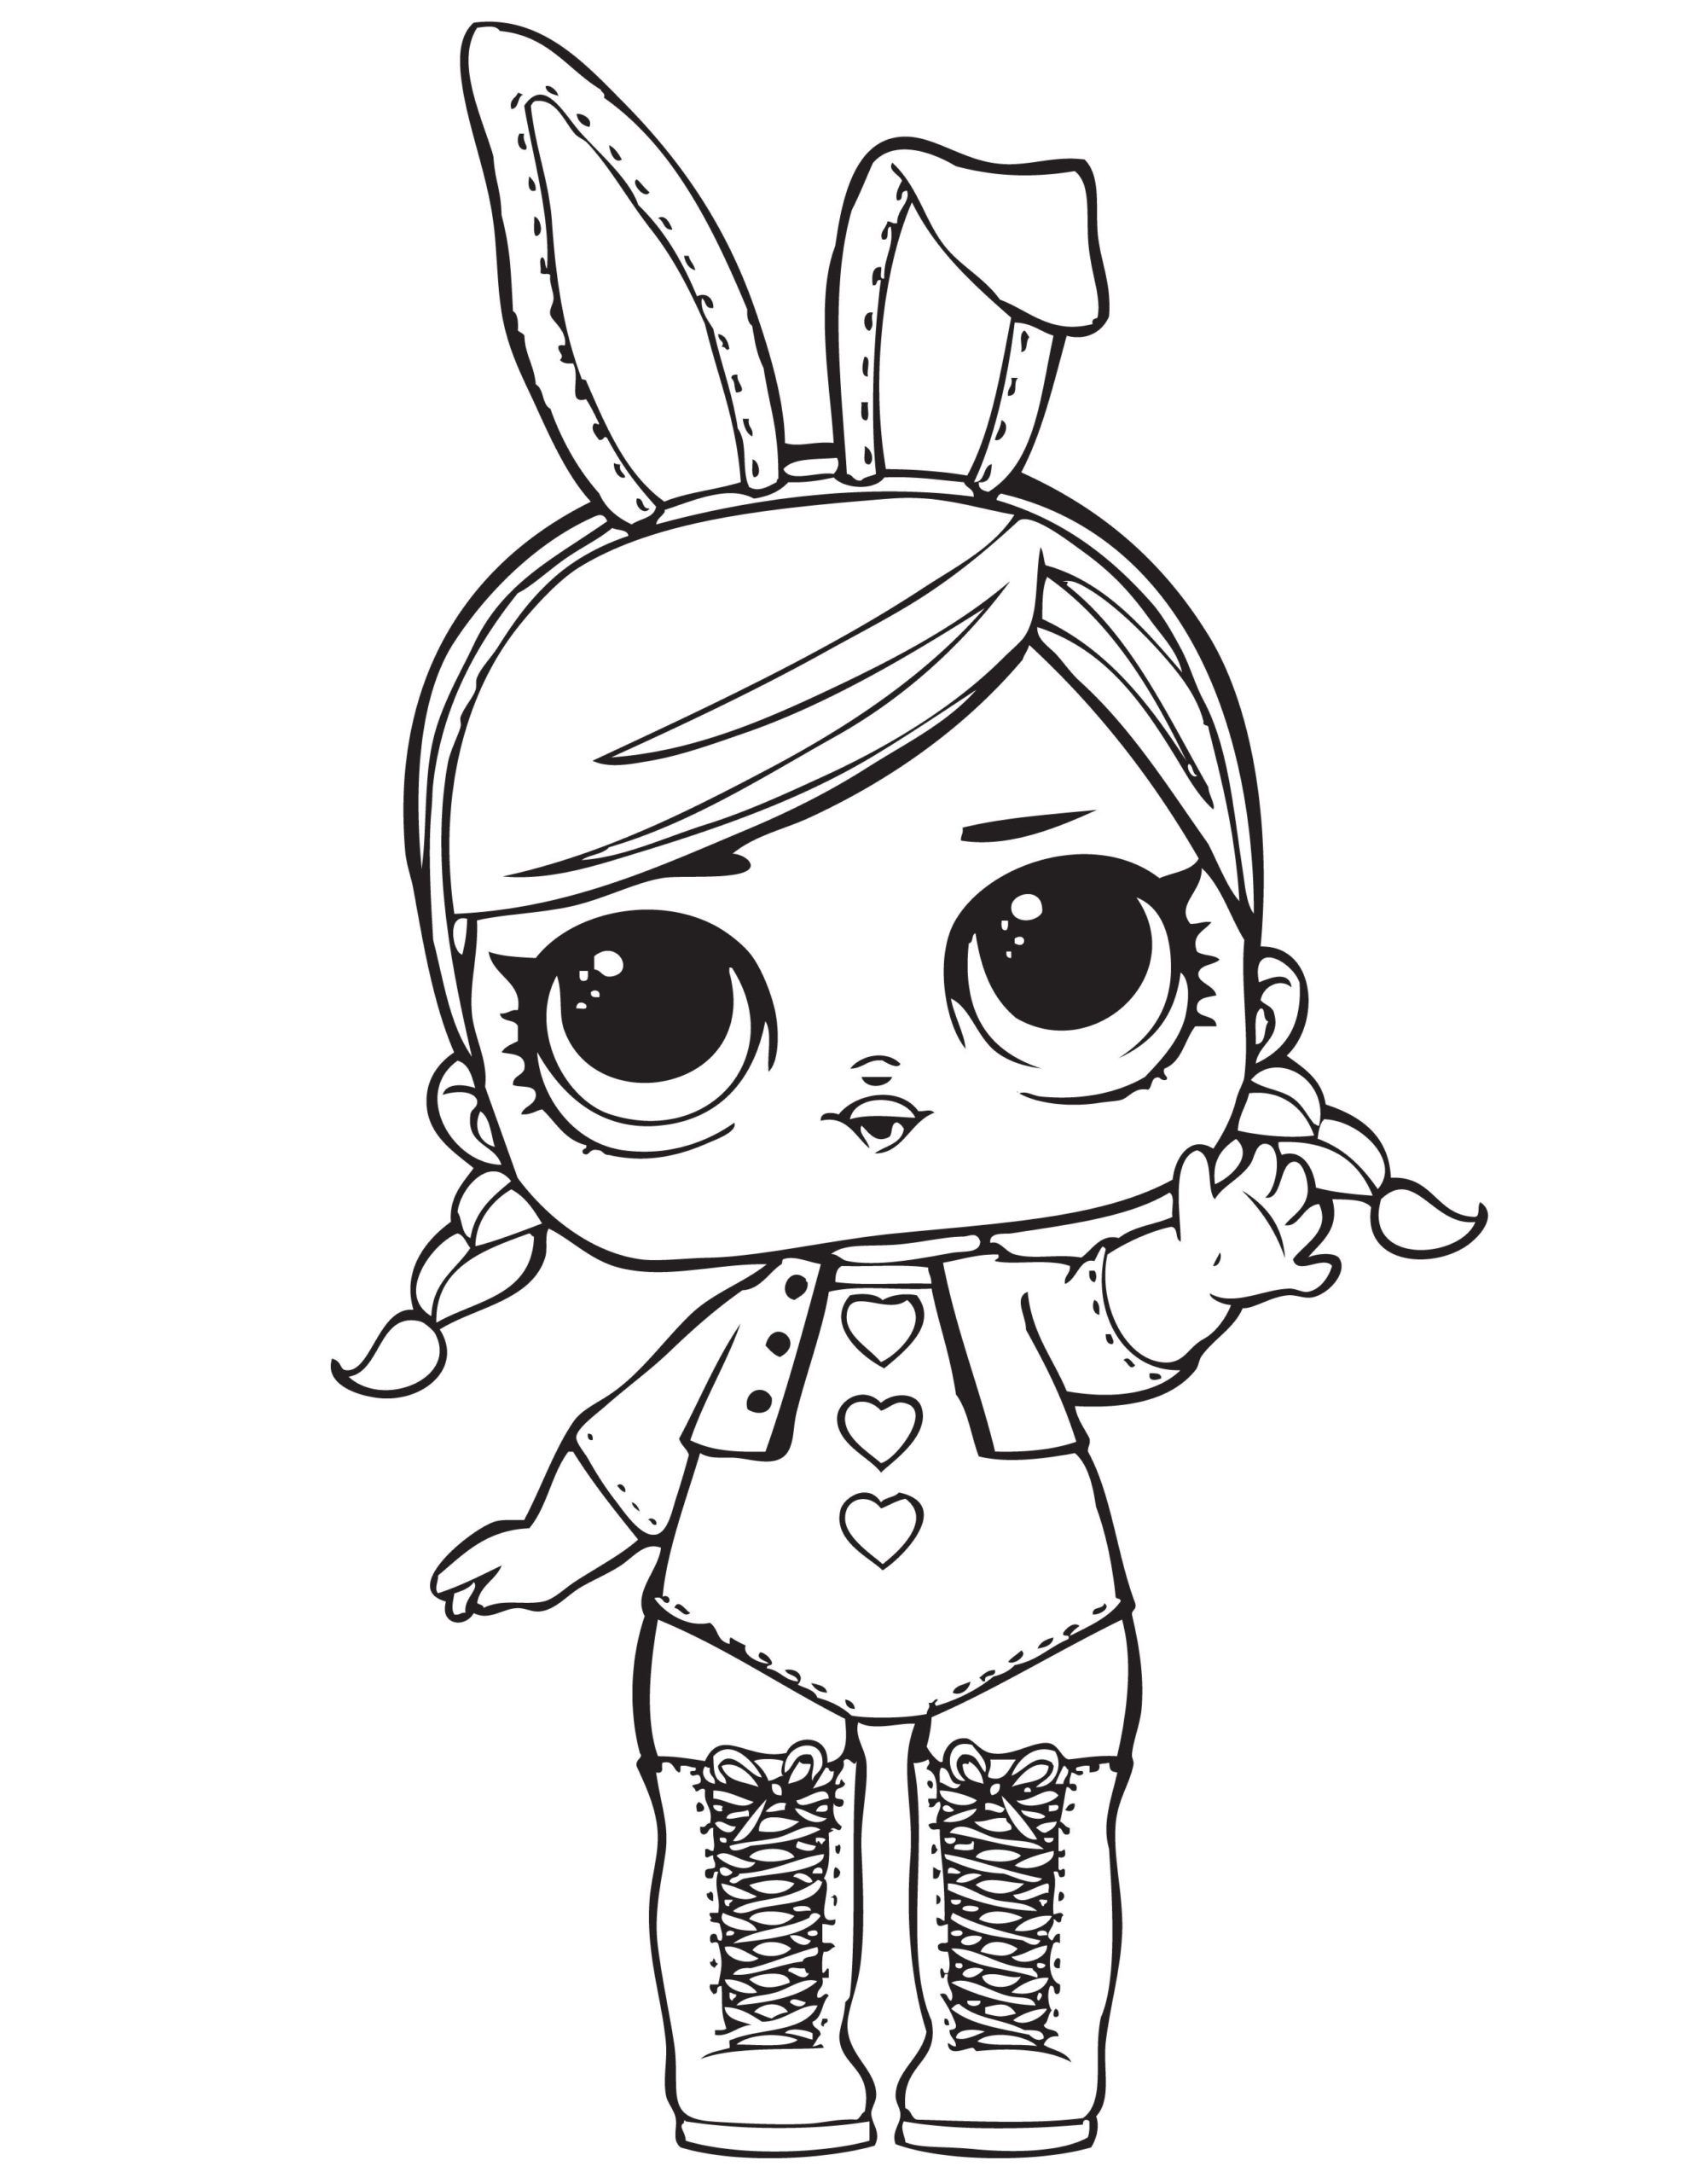 Christmas Lol Doll Coloring Pages Animal Coloring Pages Unicorn Coloring Pages Cartoon Coloring Pages